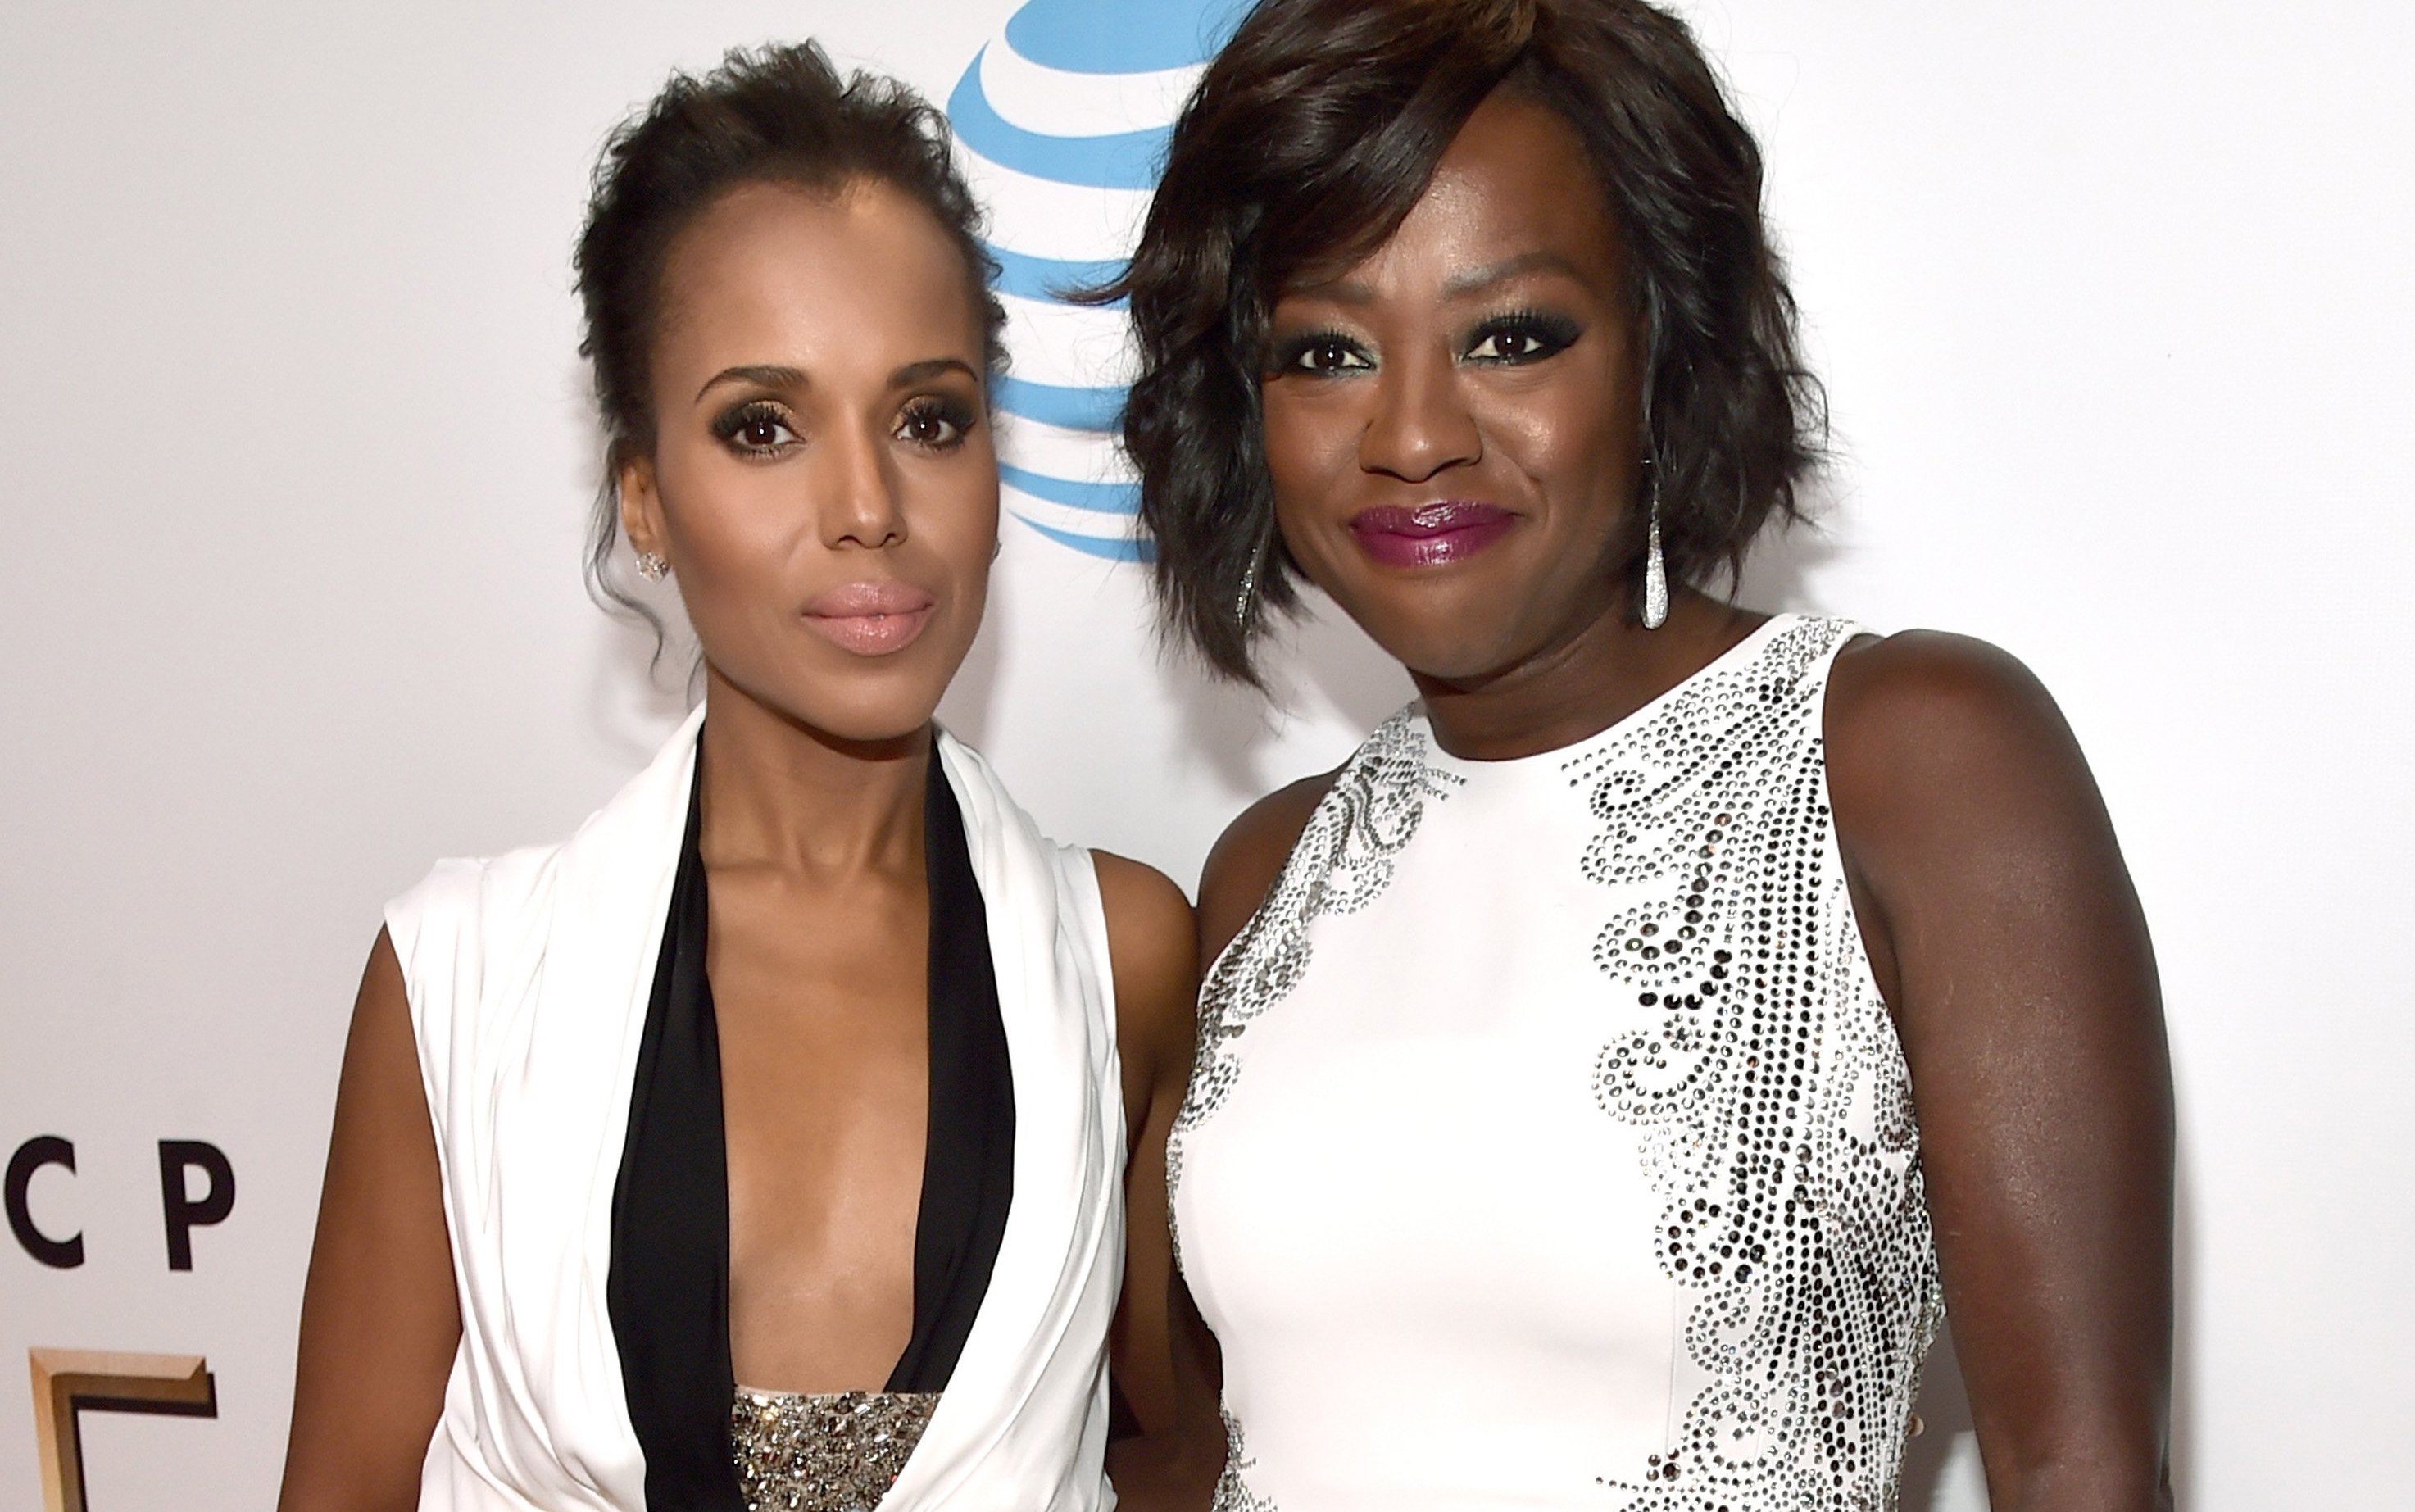 ABC STAGING 'SCANDAL,' 'HOW TO GET AWAY WITH MURDER' CROSSOVER EPISODES